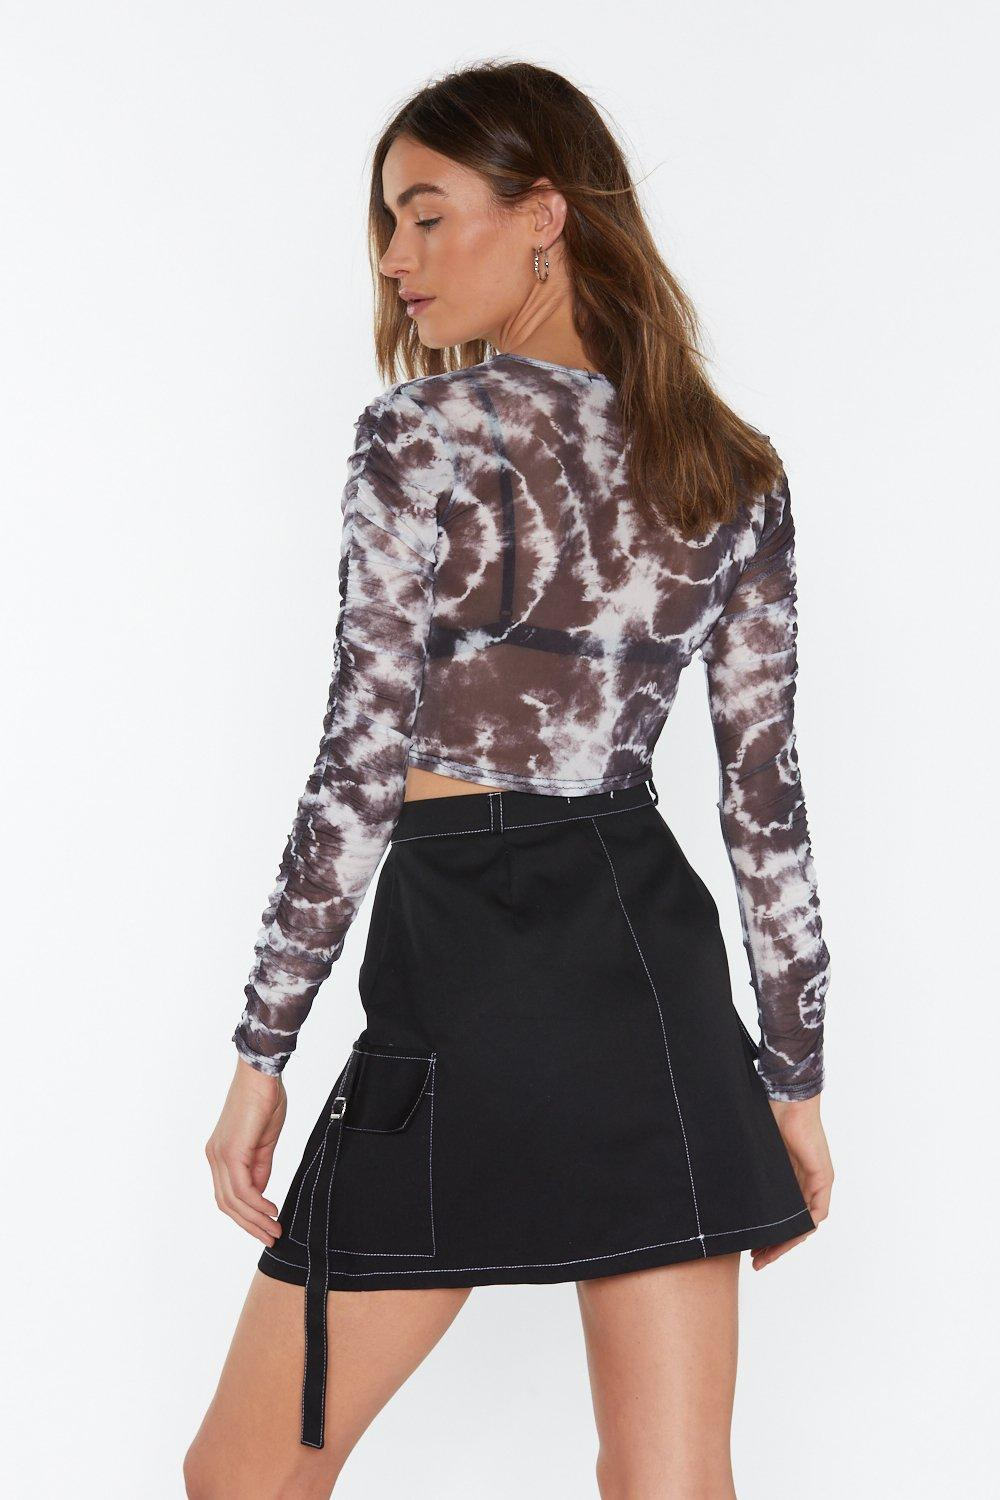 407b094c03e Tie Dye For You Mesh Crop Top   Shop Clothes at Nasty Gal!